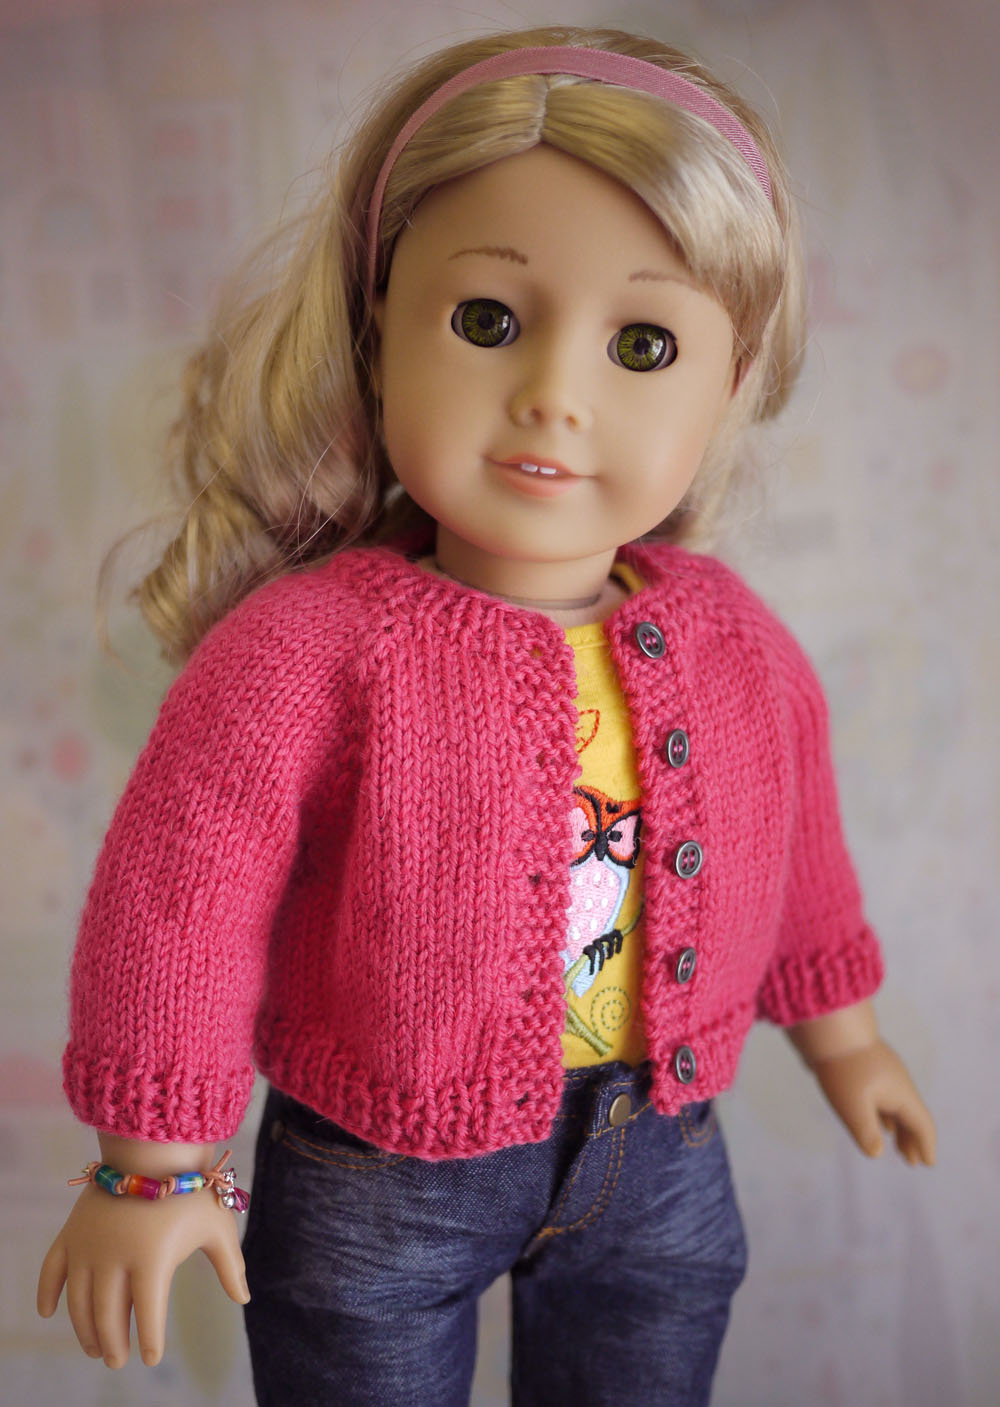 Knitting Patterns For American Girl Dolls : free knitting patterns for american girl doll - Music ...